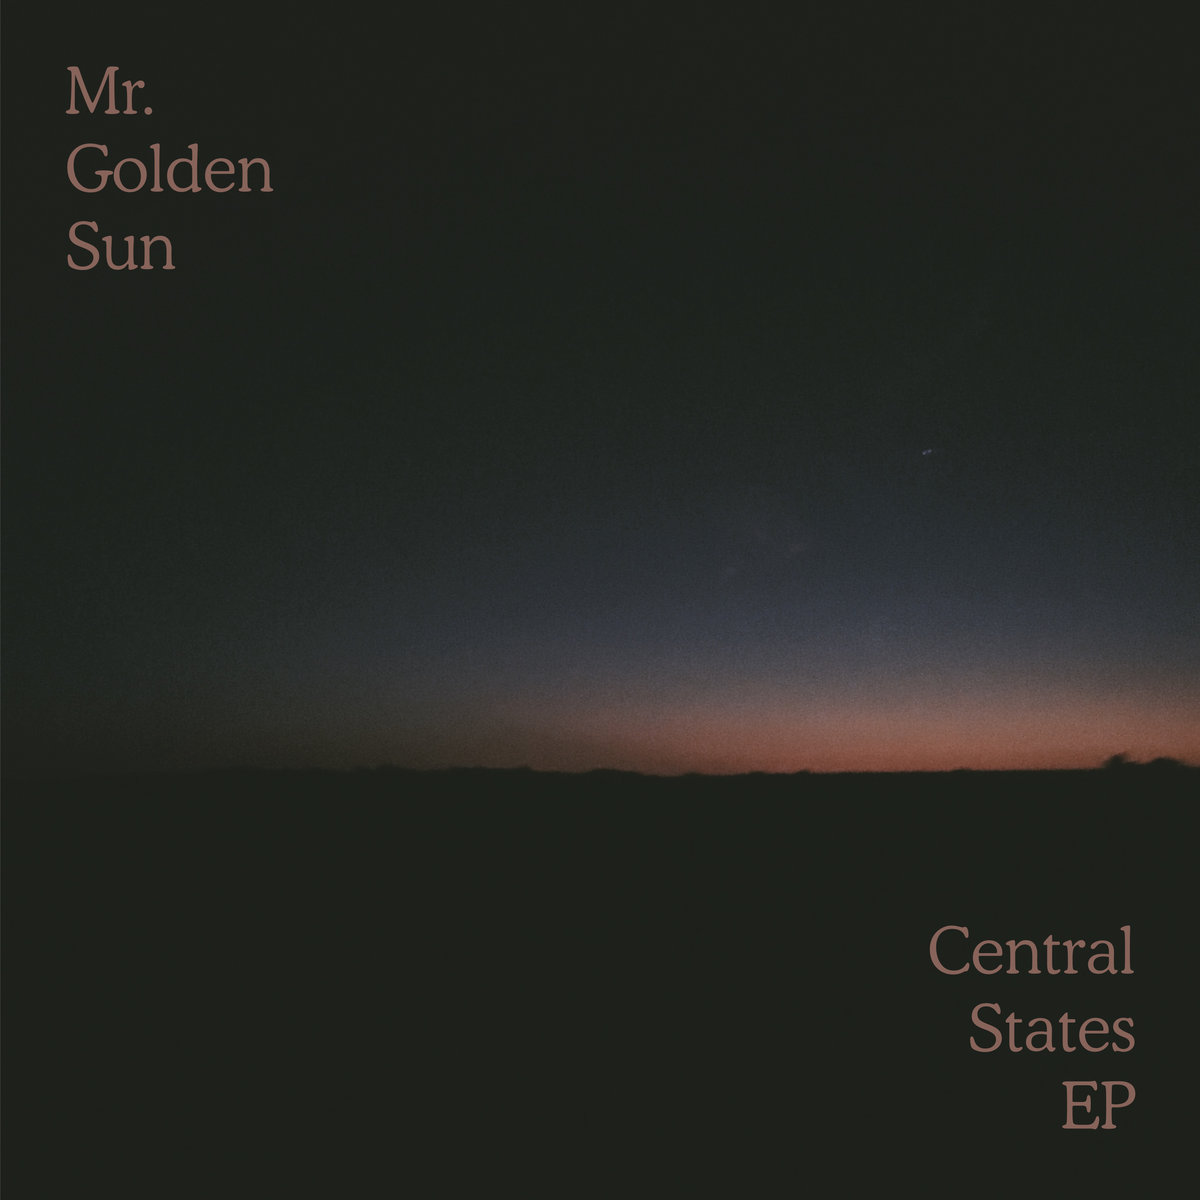 Review: Central States EP by Mr. Golden Sun